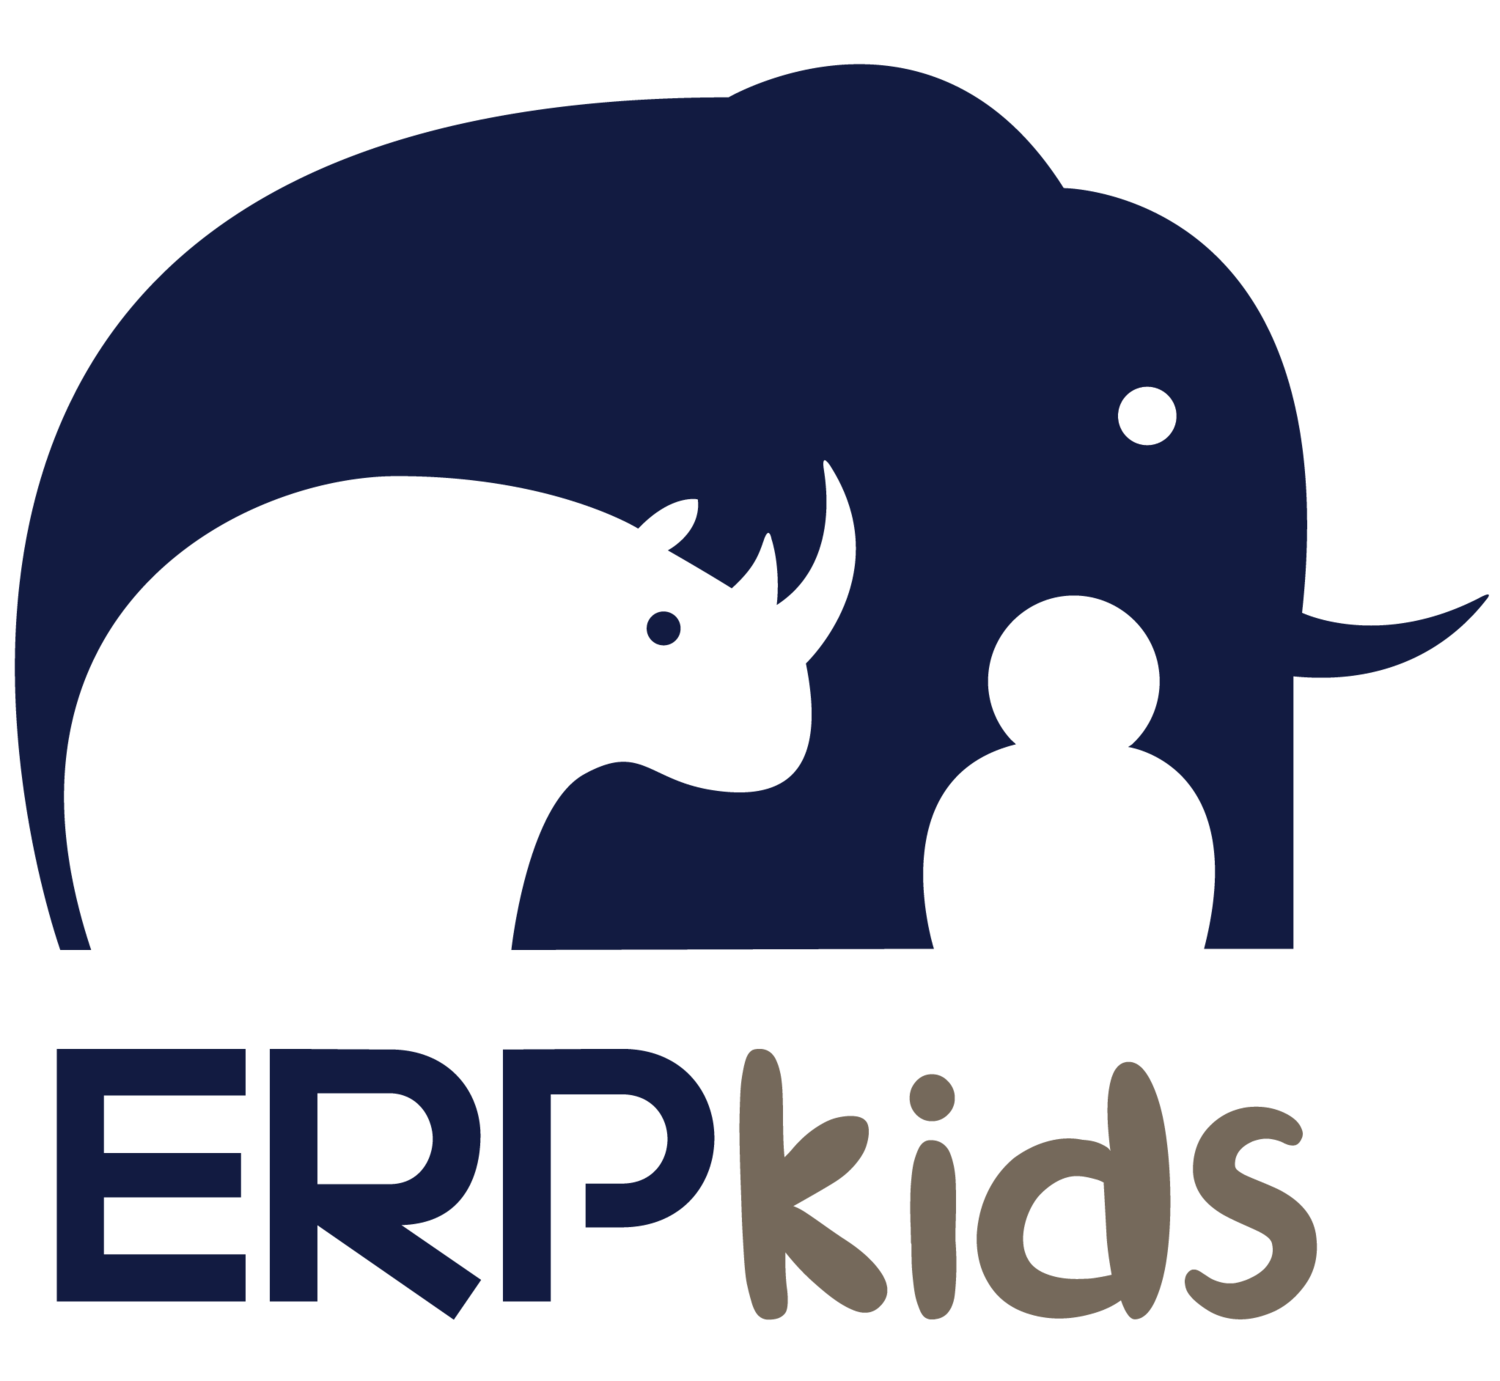 Fundraiser clipart ngos. About erpkids ngo